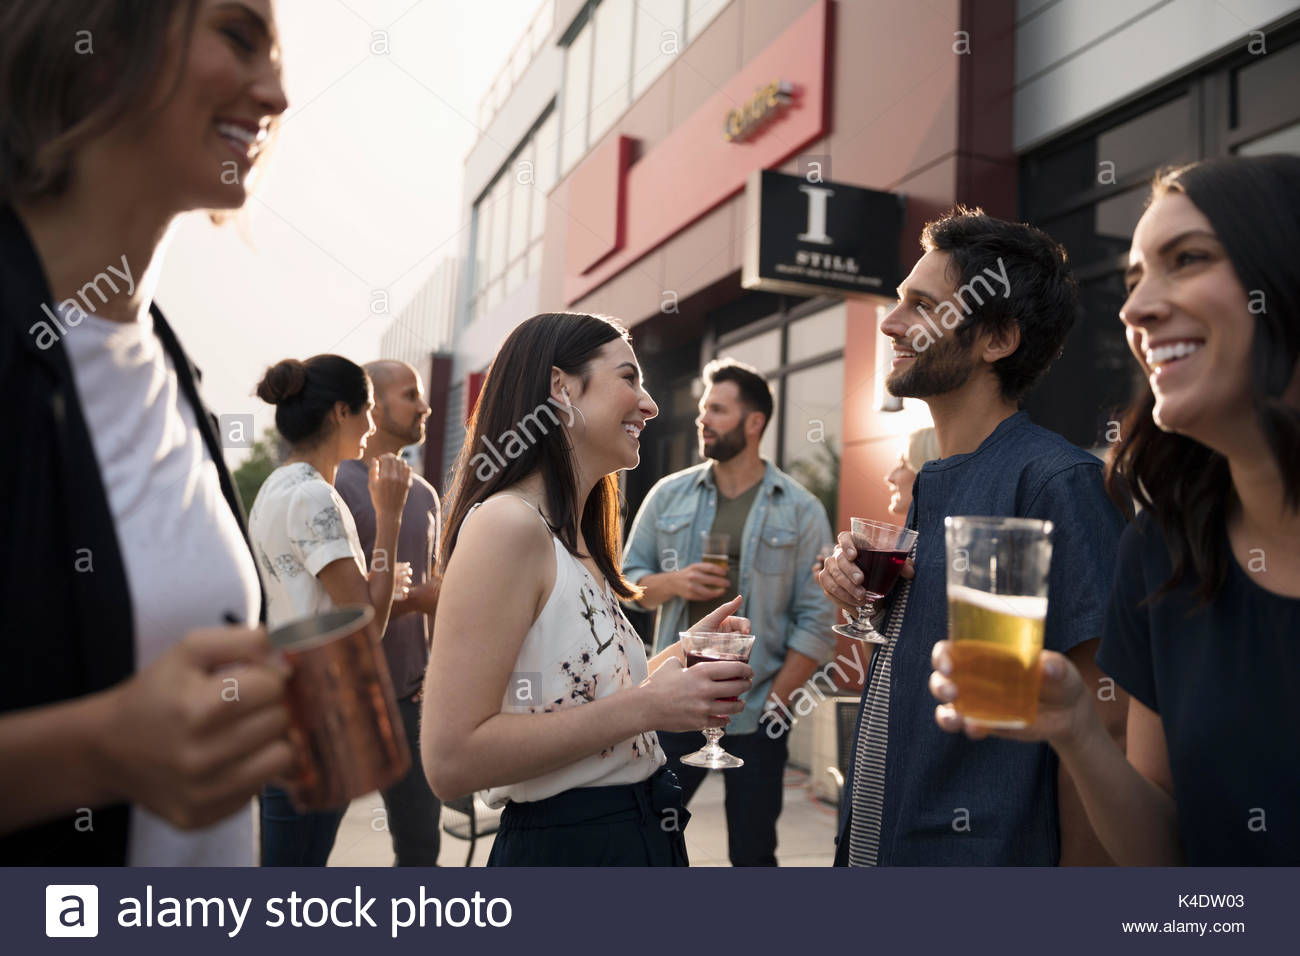 Friends drinking beer and wine, socializing on bar patio - Stock Image